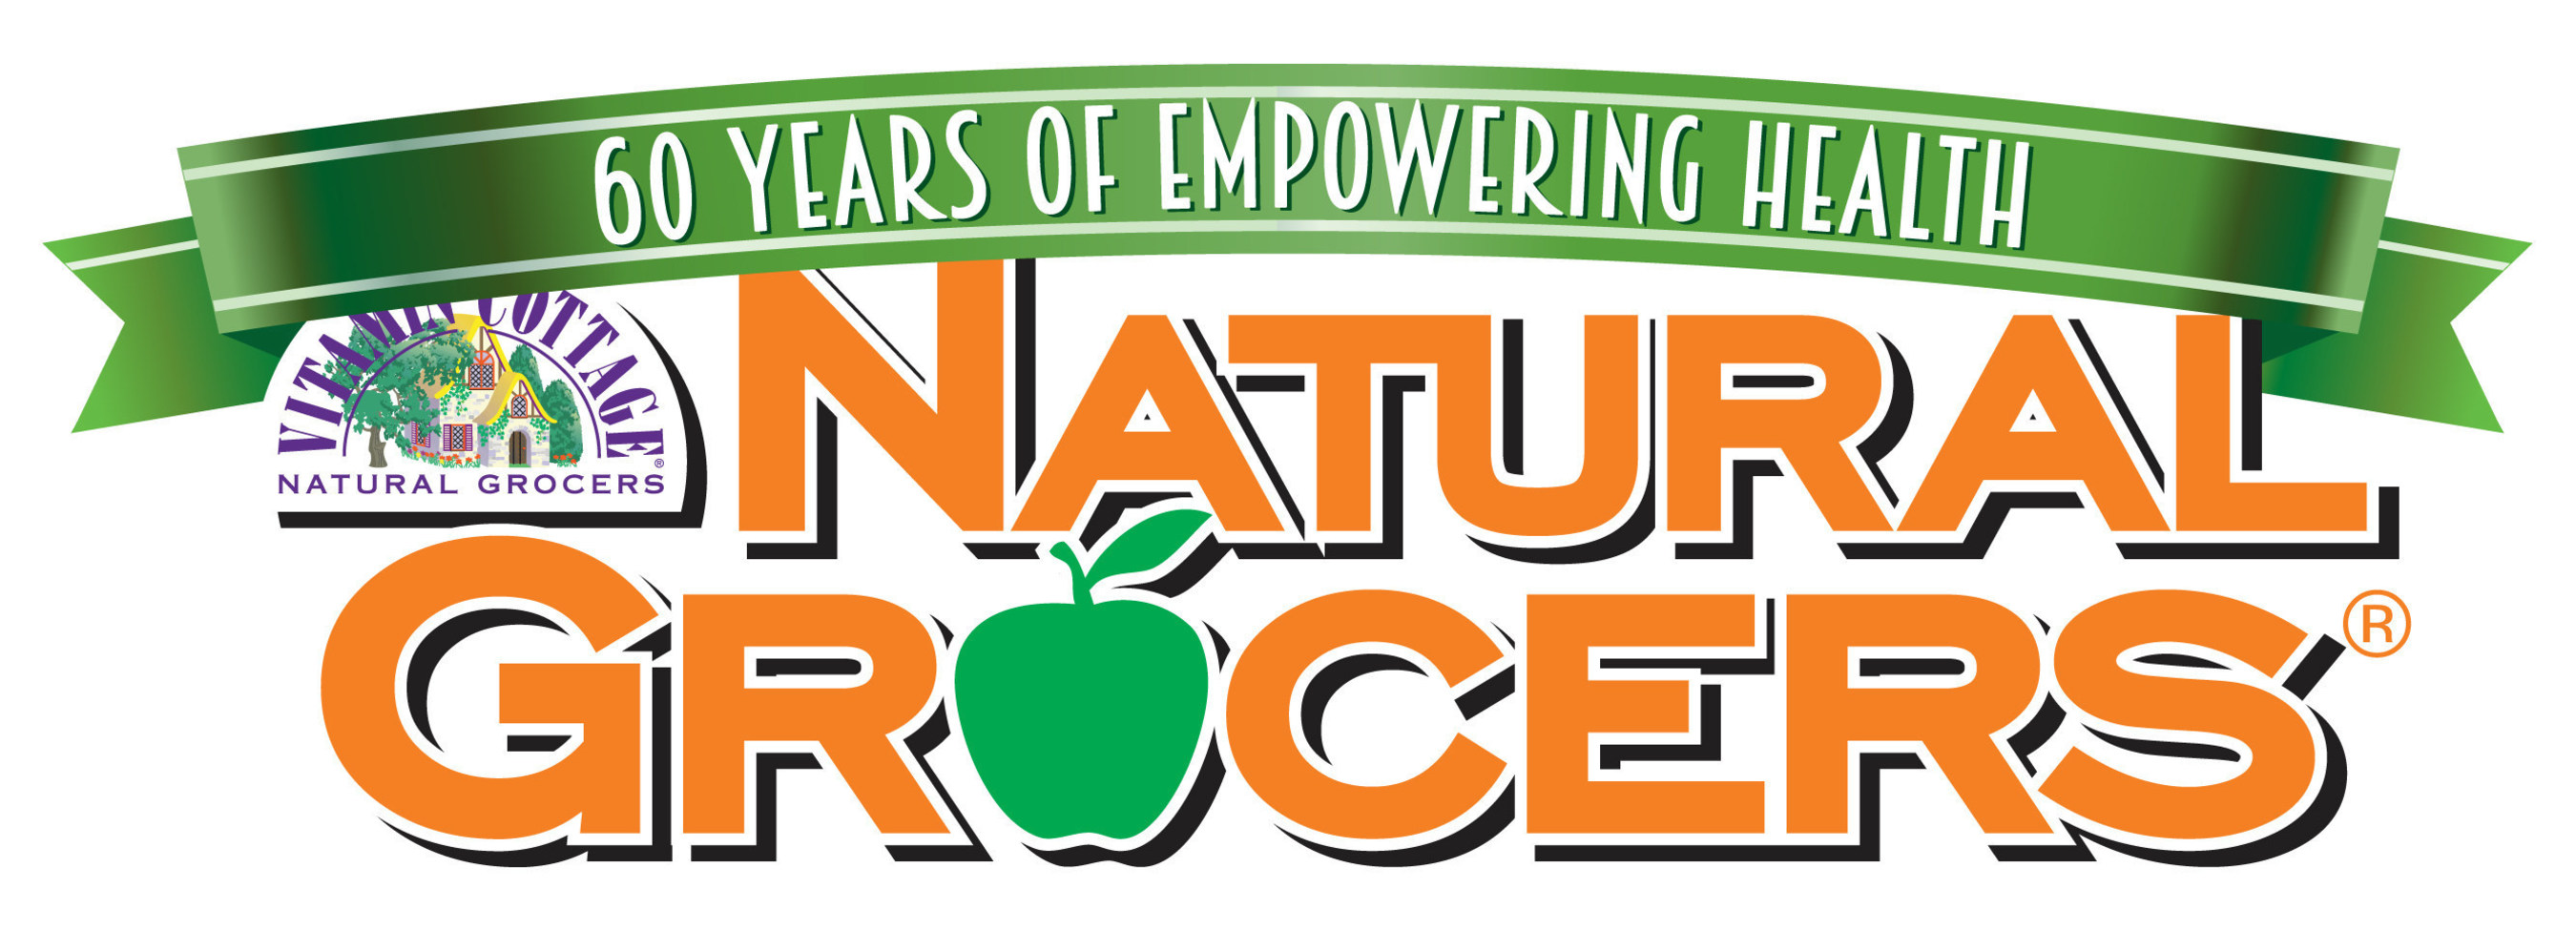 Natural Grocers celebrates 60th anniversary.